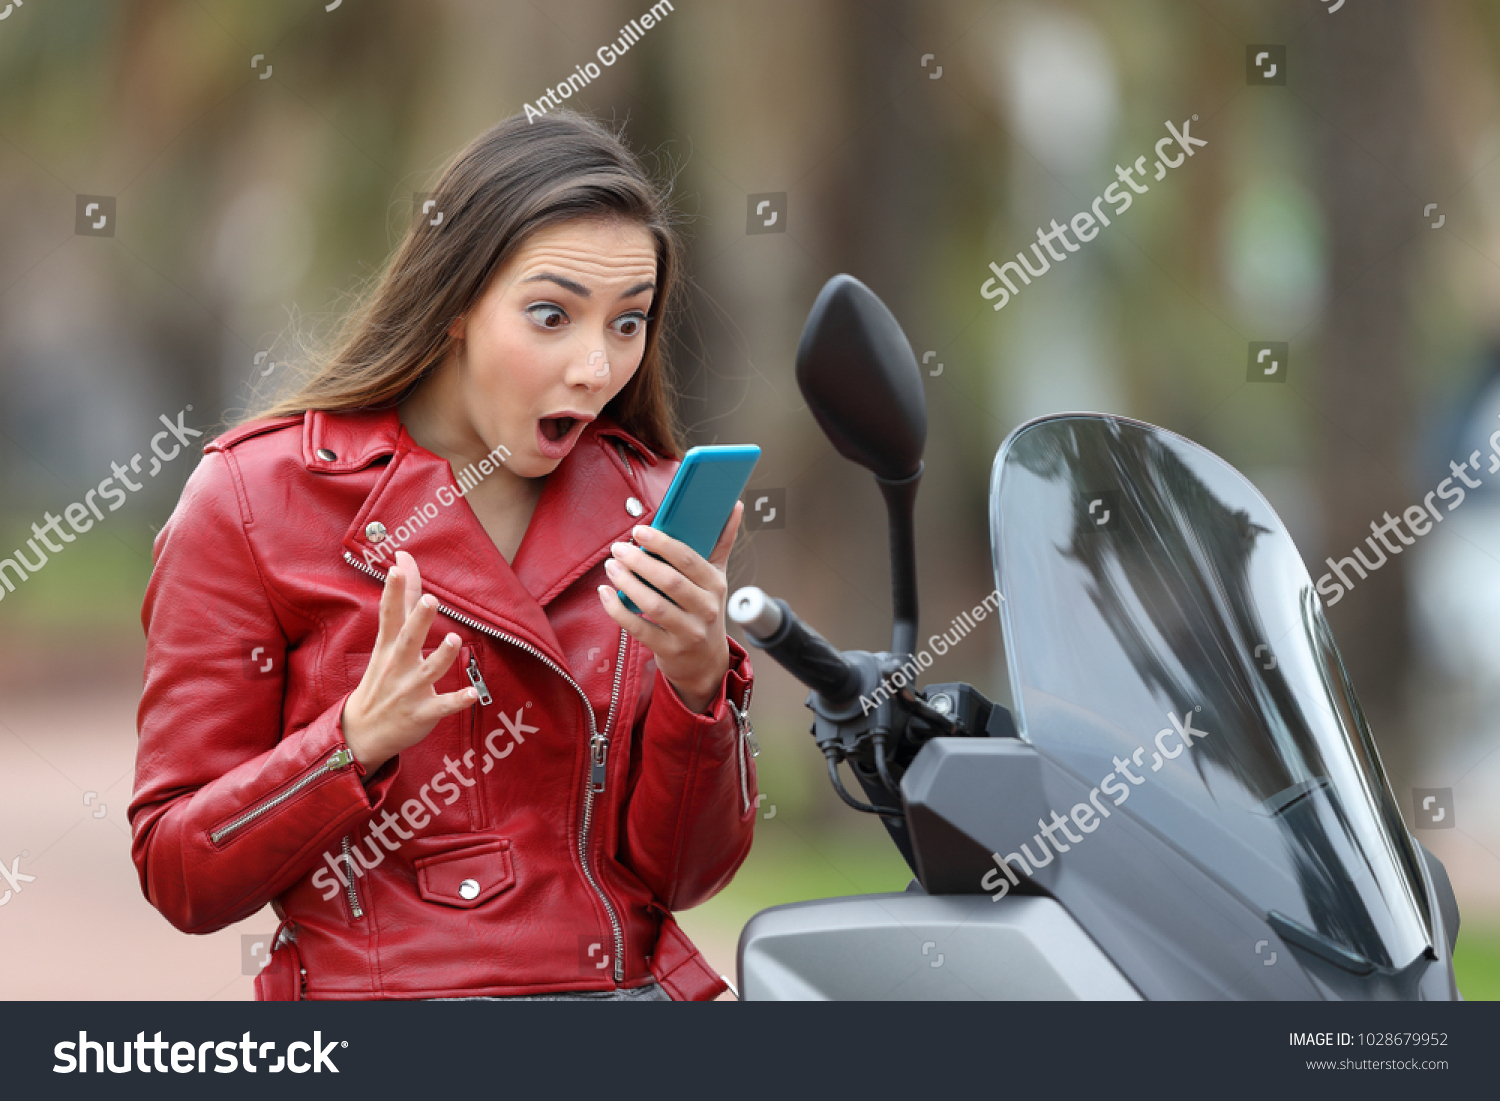 stock-photo-amazed-motorbiker-reading-ex